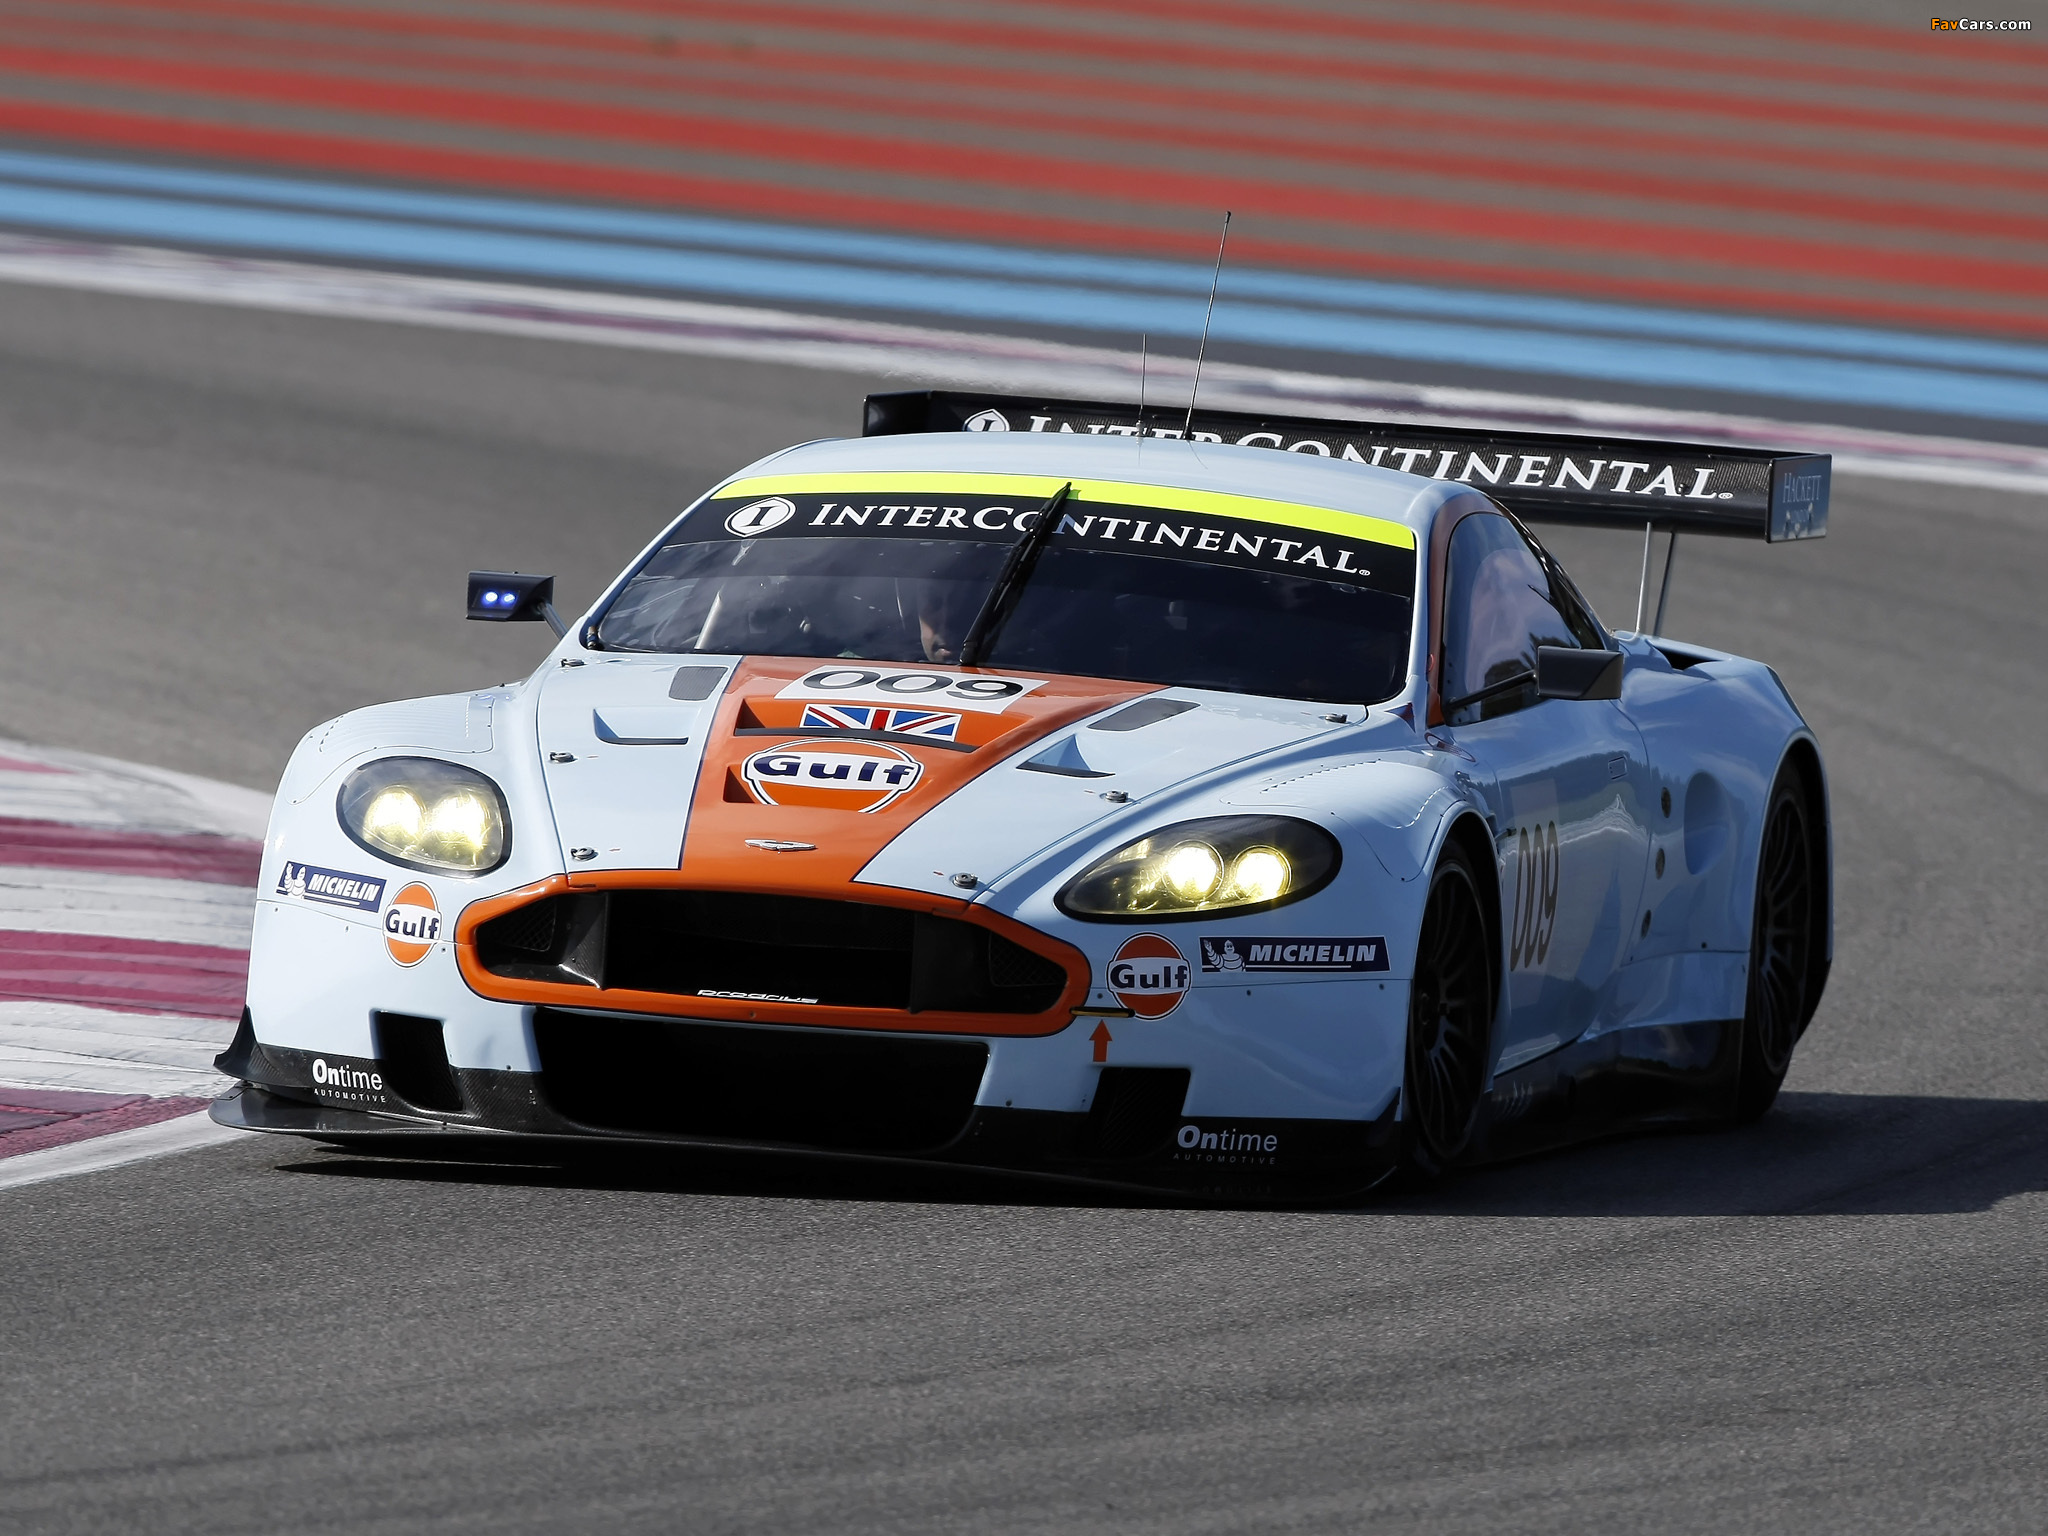 Images Of Aston Martin Dbr9 Gulf Oil Livery 2008 2048x1536